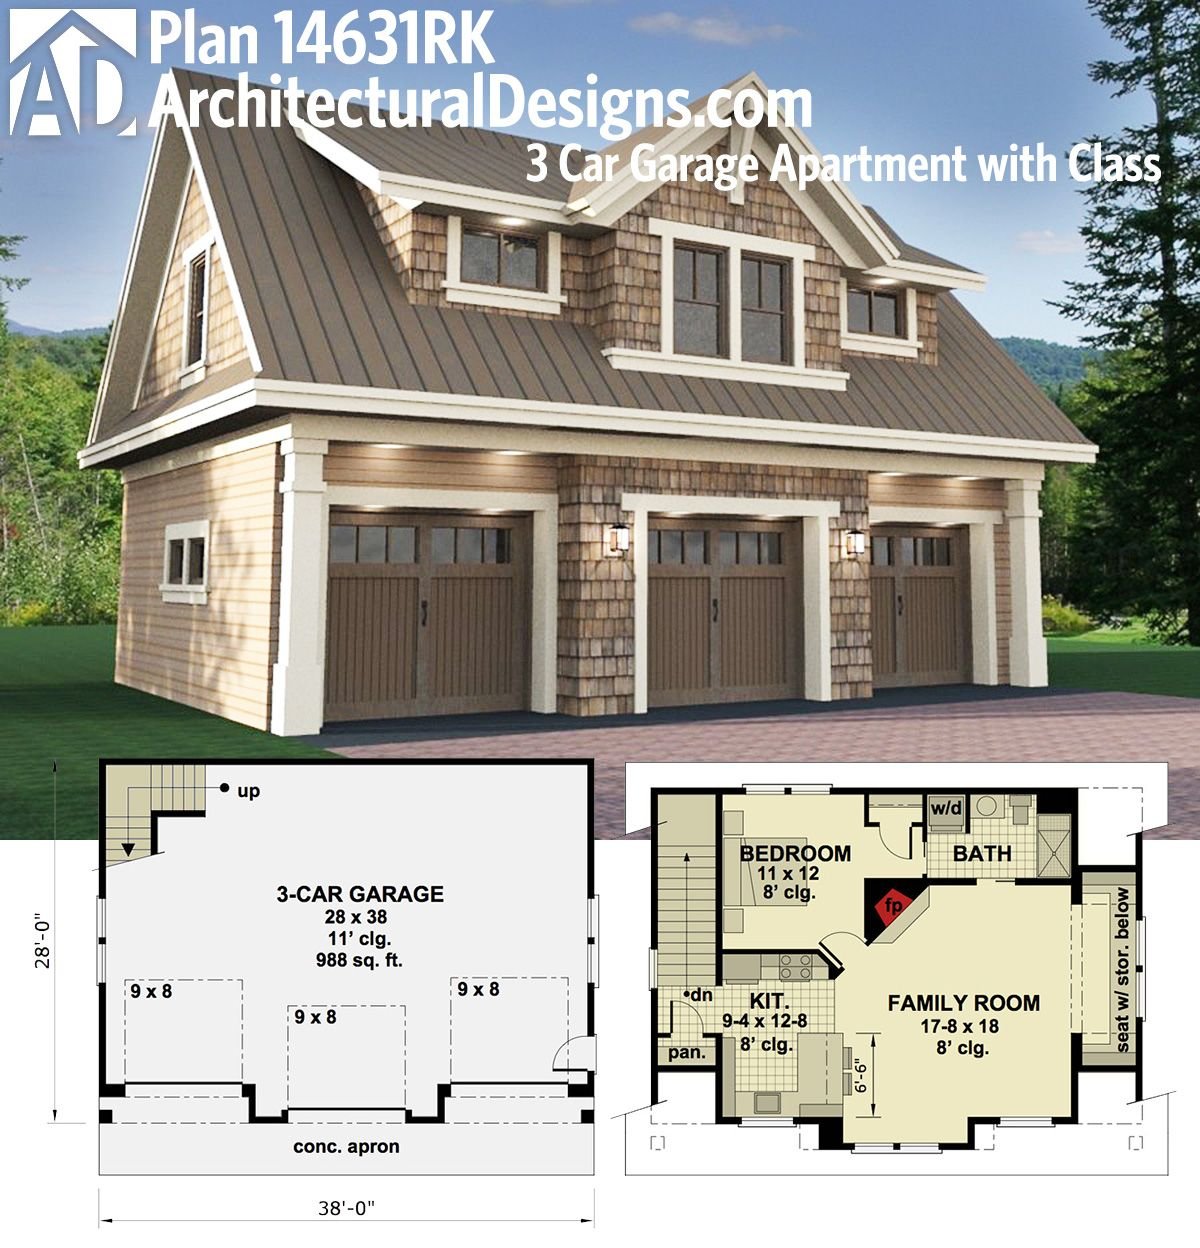 Plan 14631rk 3 car garage apartment with class carriage for Carraige house plans